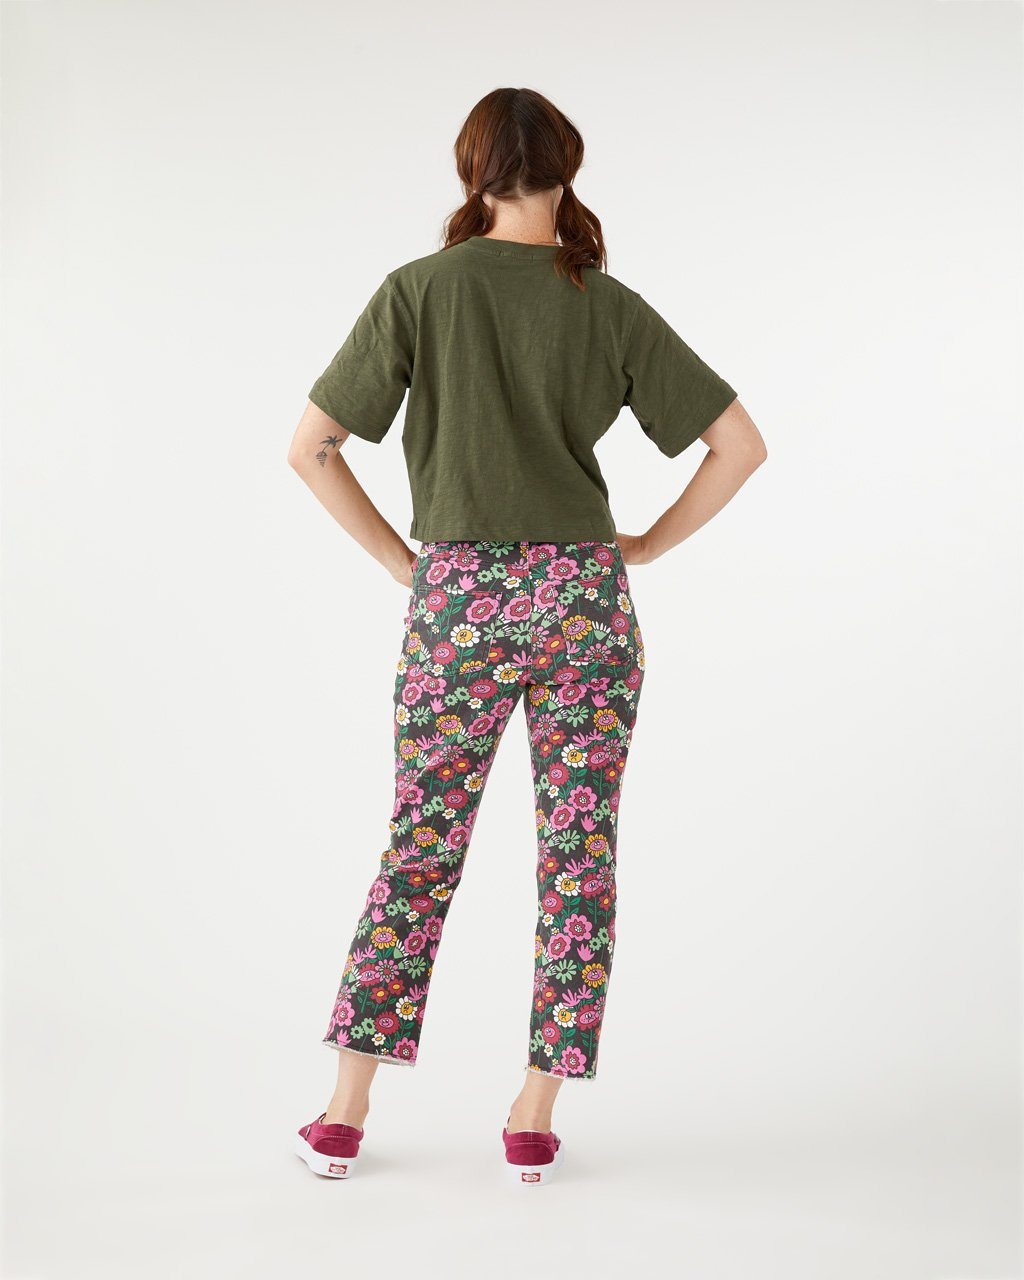 Jeans with an all-over floral motif.